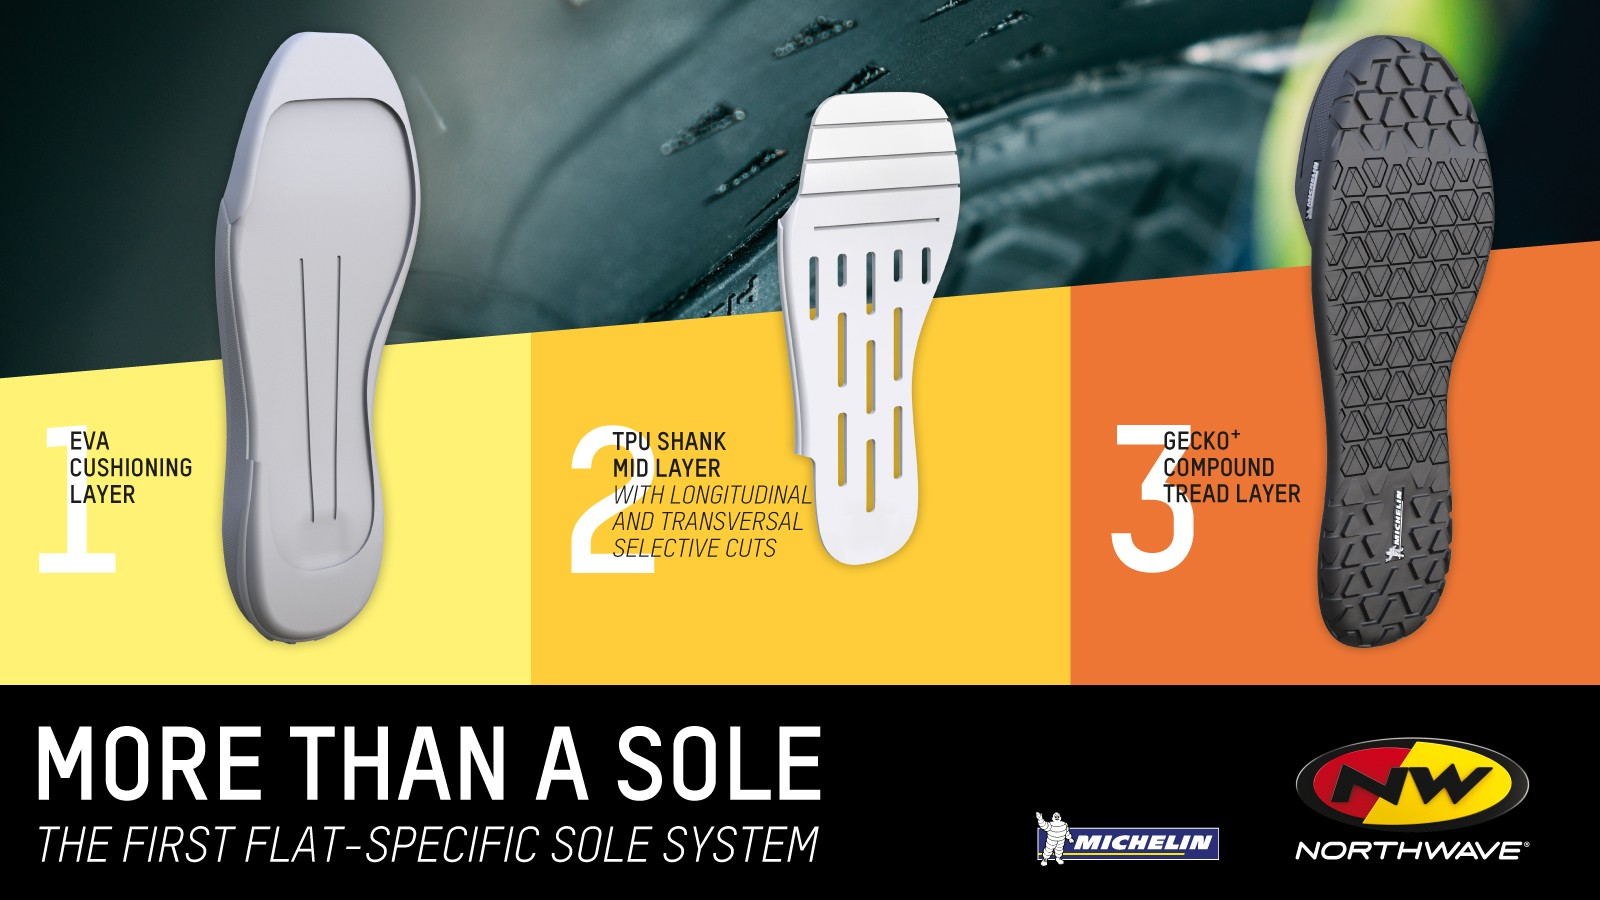 Northwave's introduction of its innovative flat-specific sole system